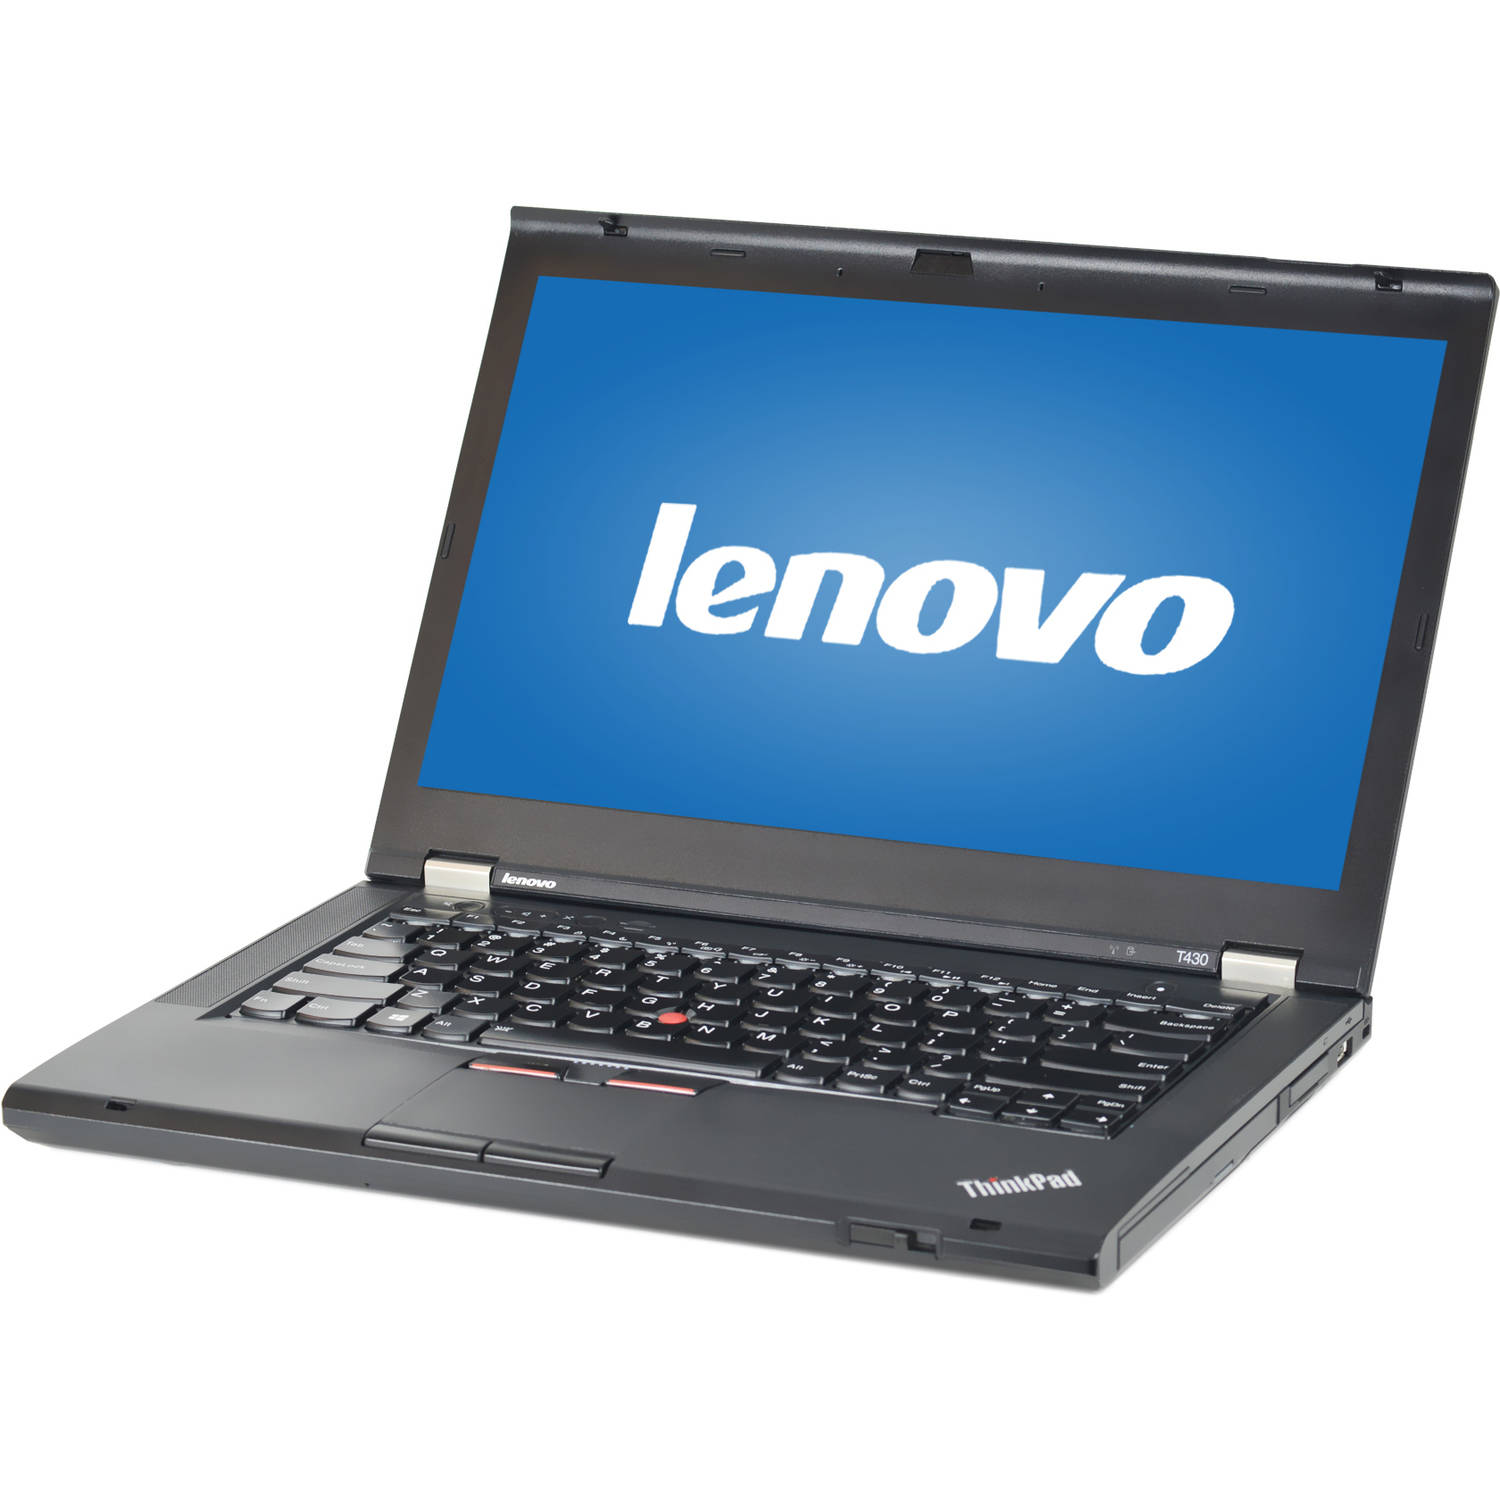 "Refurbished Lenovo Black 14"" T430 WA5-1092 Laptop PC with Intel Core i5-3210M Processor, 12GB Memory, 128GB Solid State Drive and Windows 10 Pro"